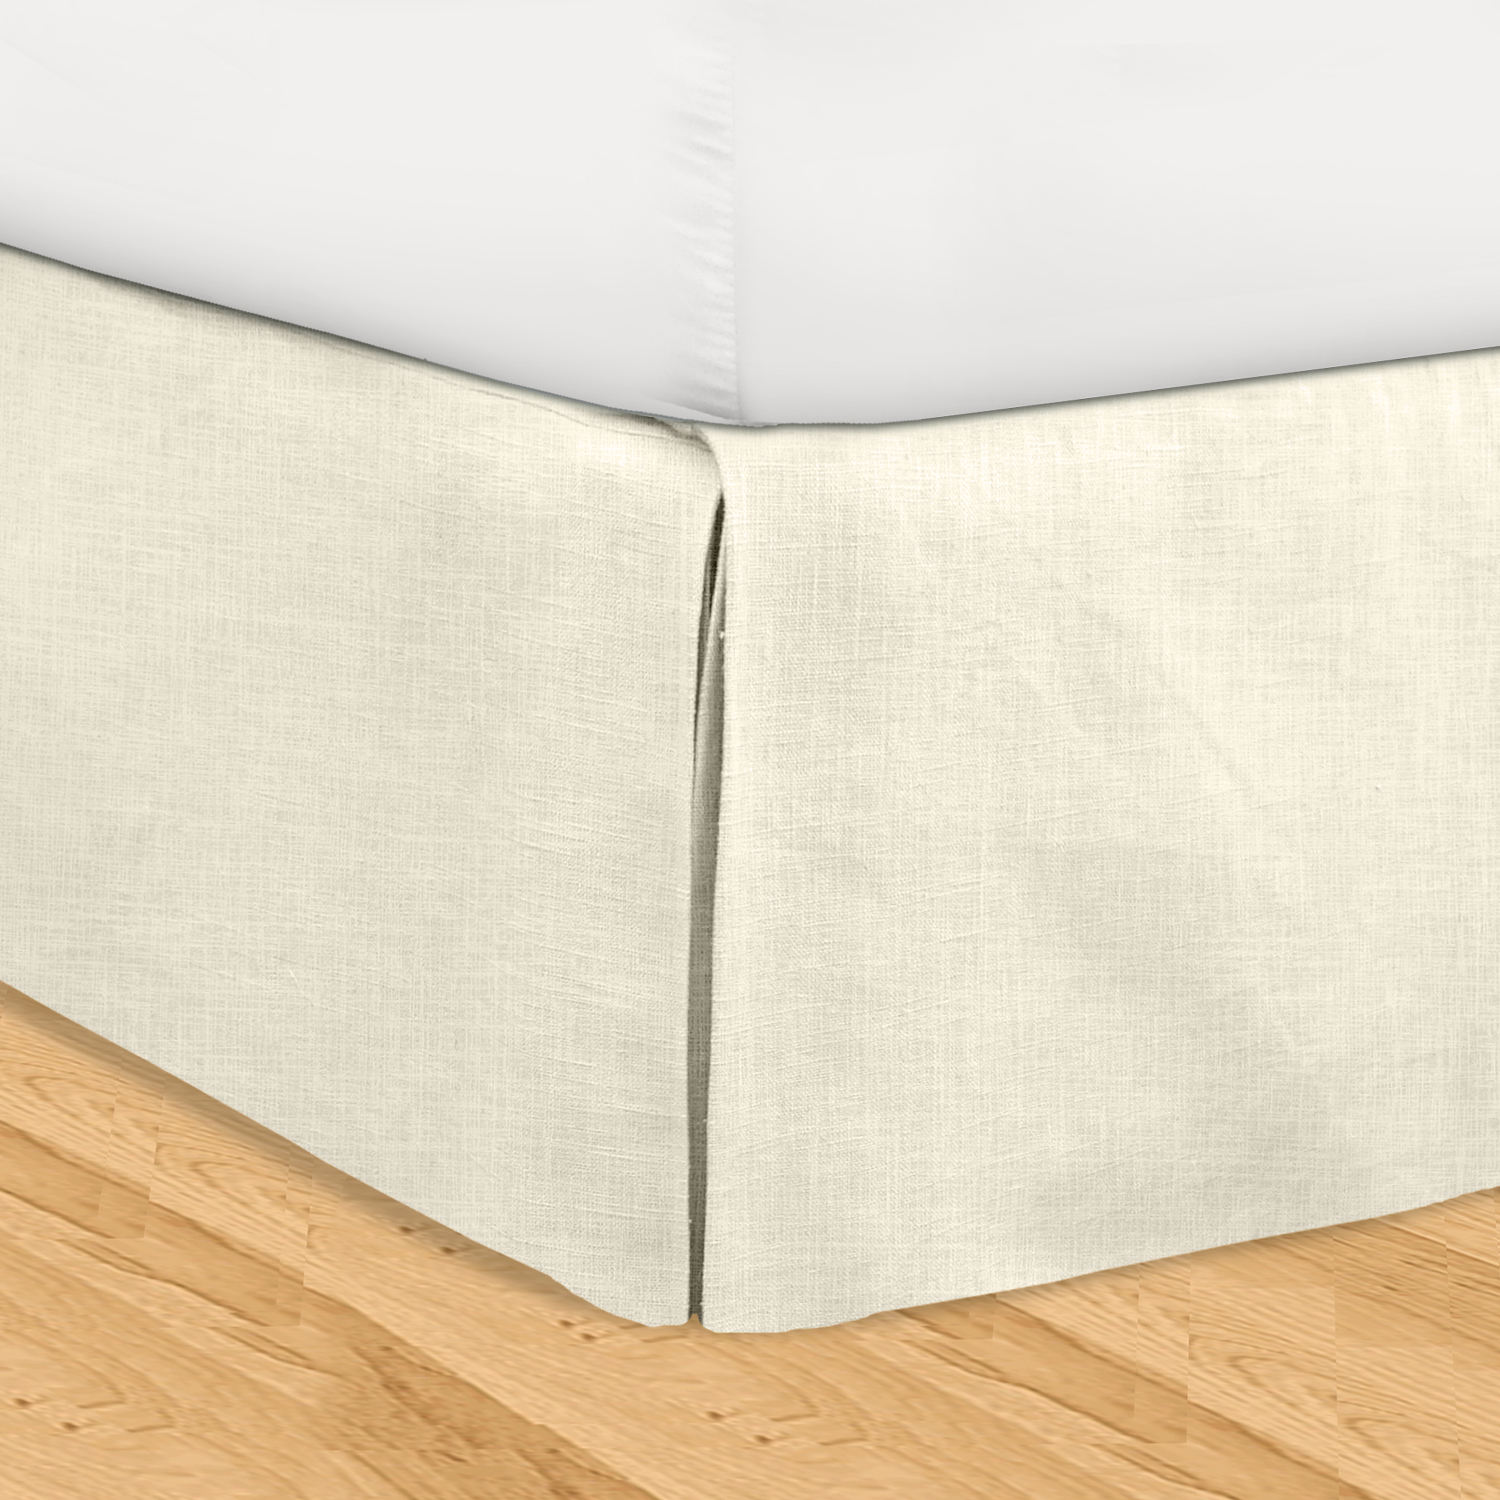 Veratex Huys-Linen Huys Bed Ruffle